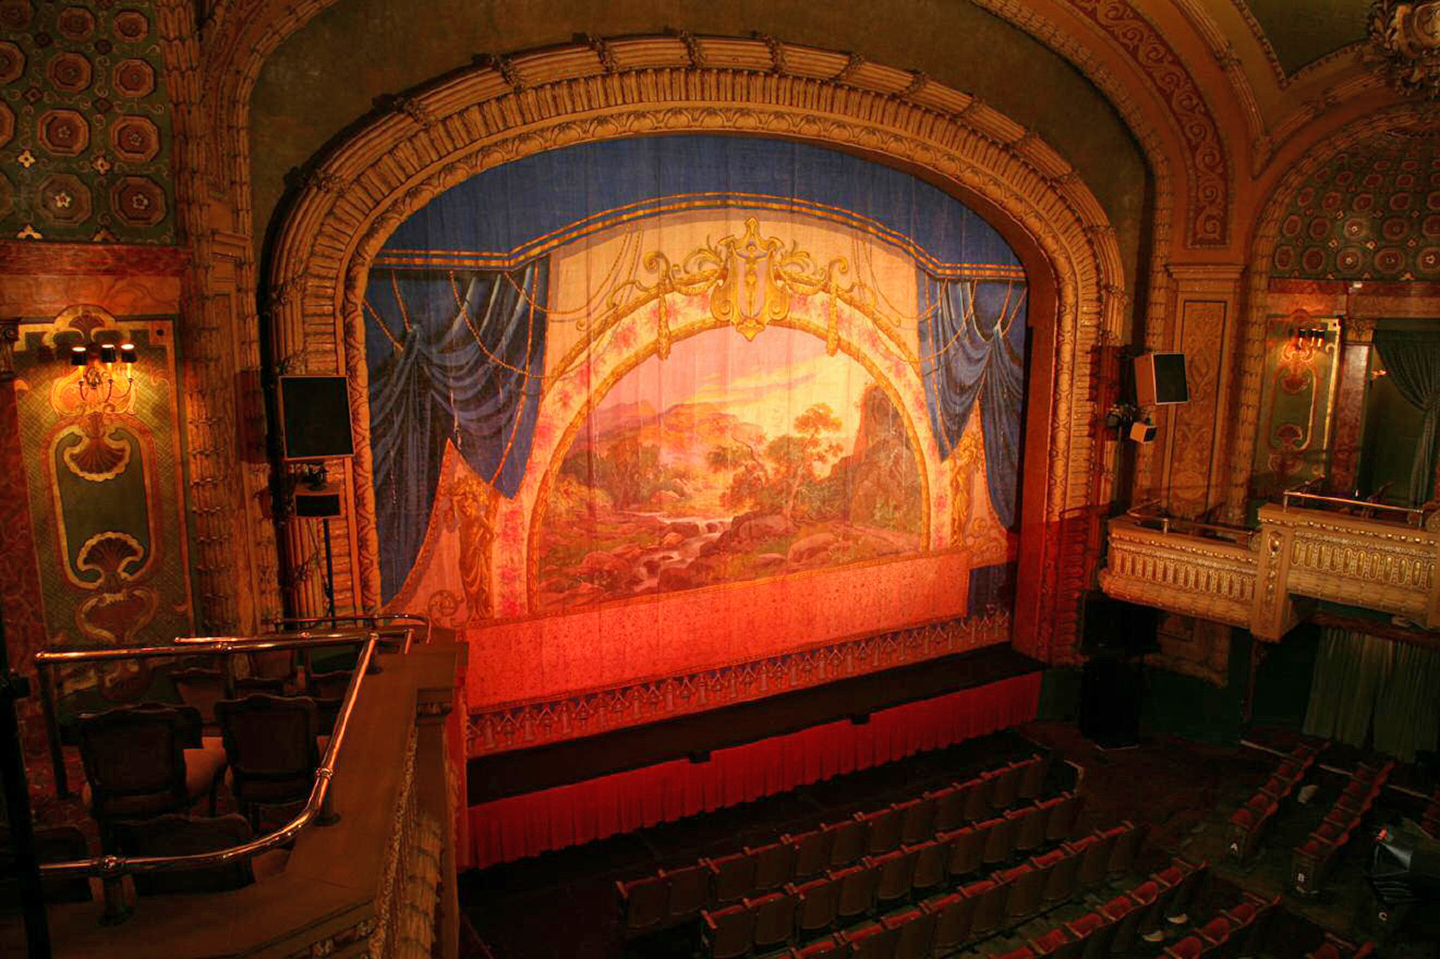 The Paramount Theatre fire curtain